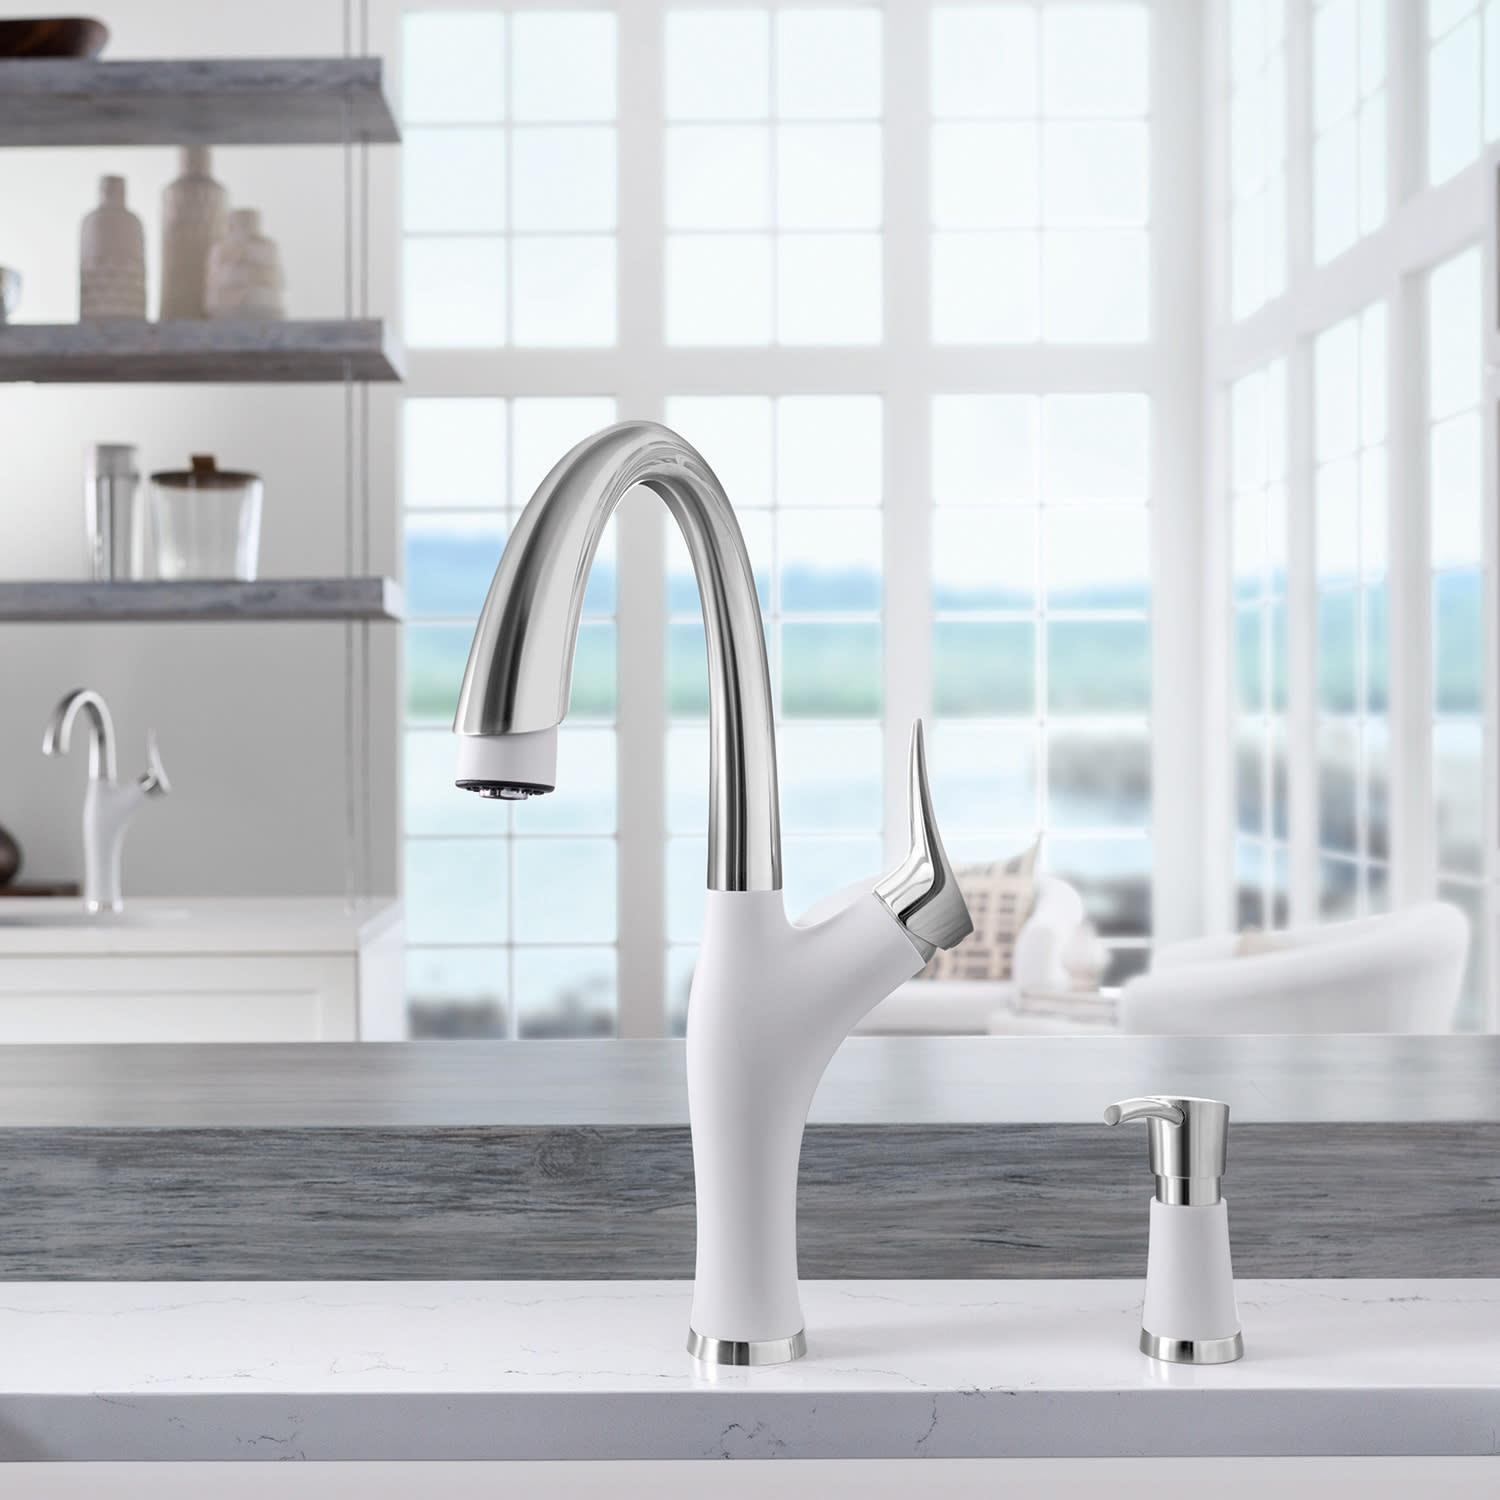 luxury extraordinary kitchen com htsrec new of blanco standard faucet aerator american pictures photos june